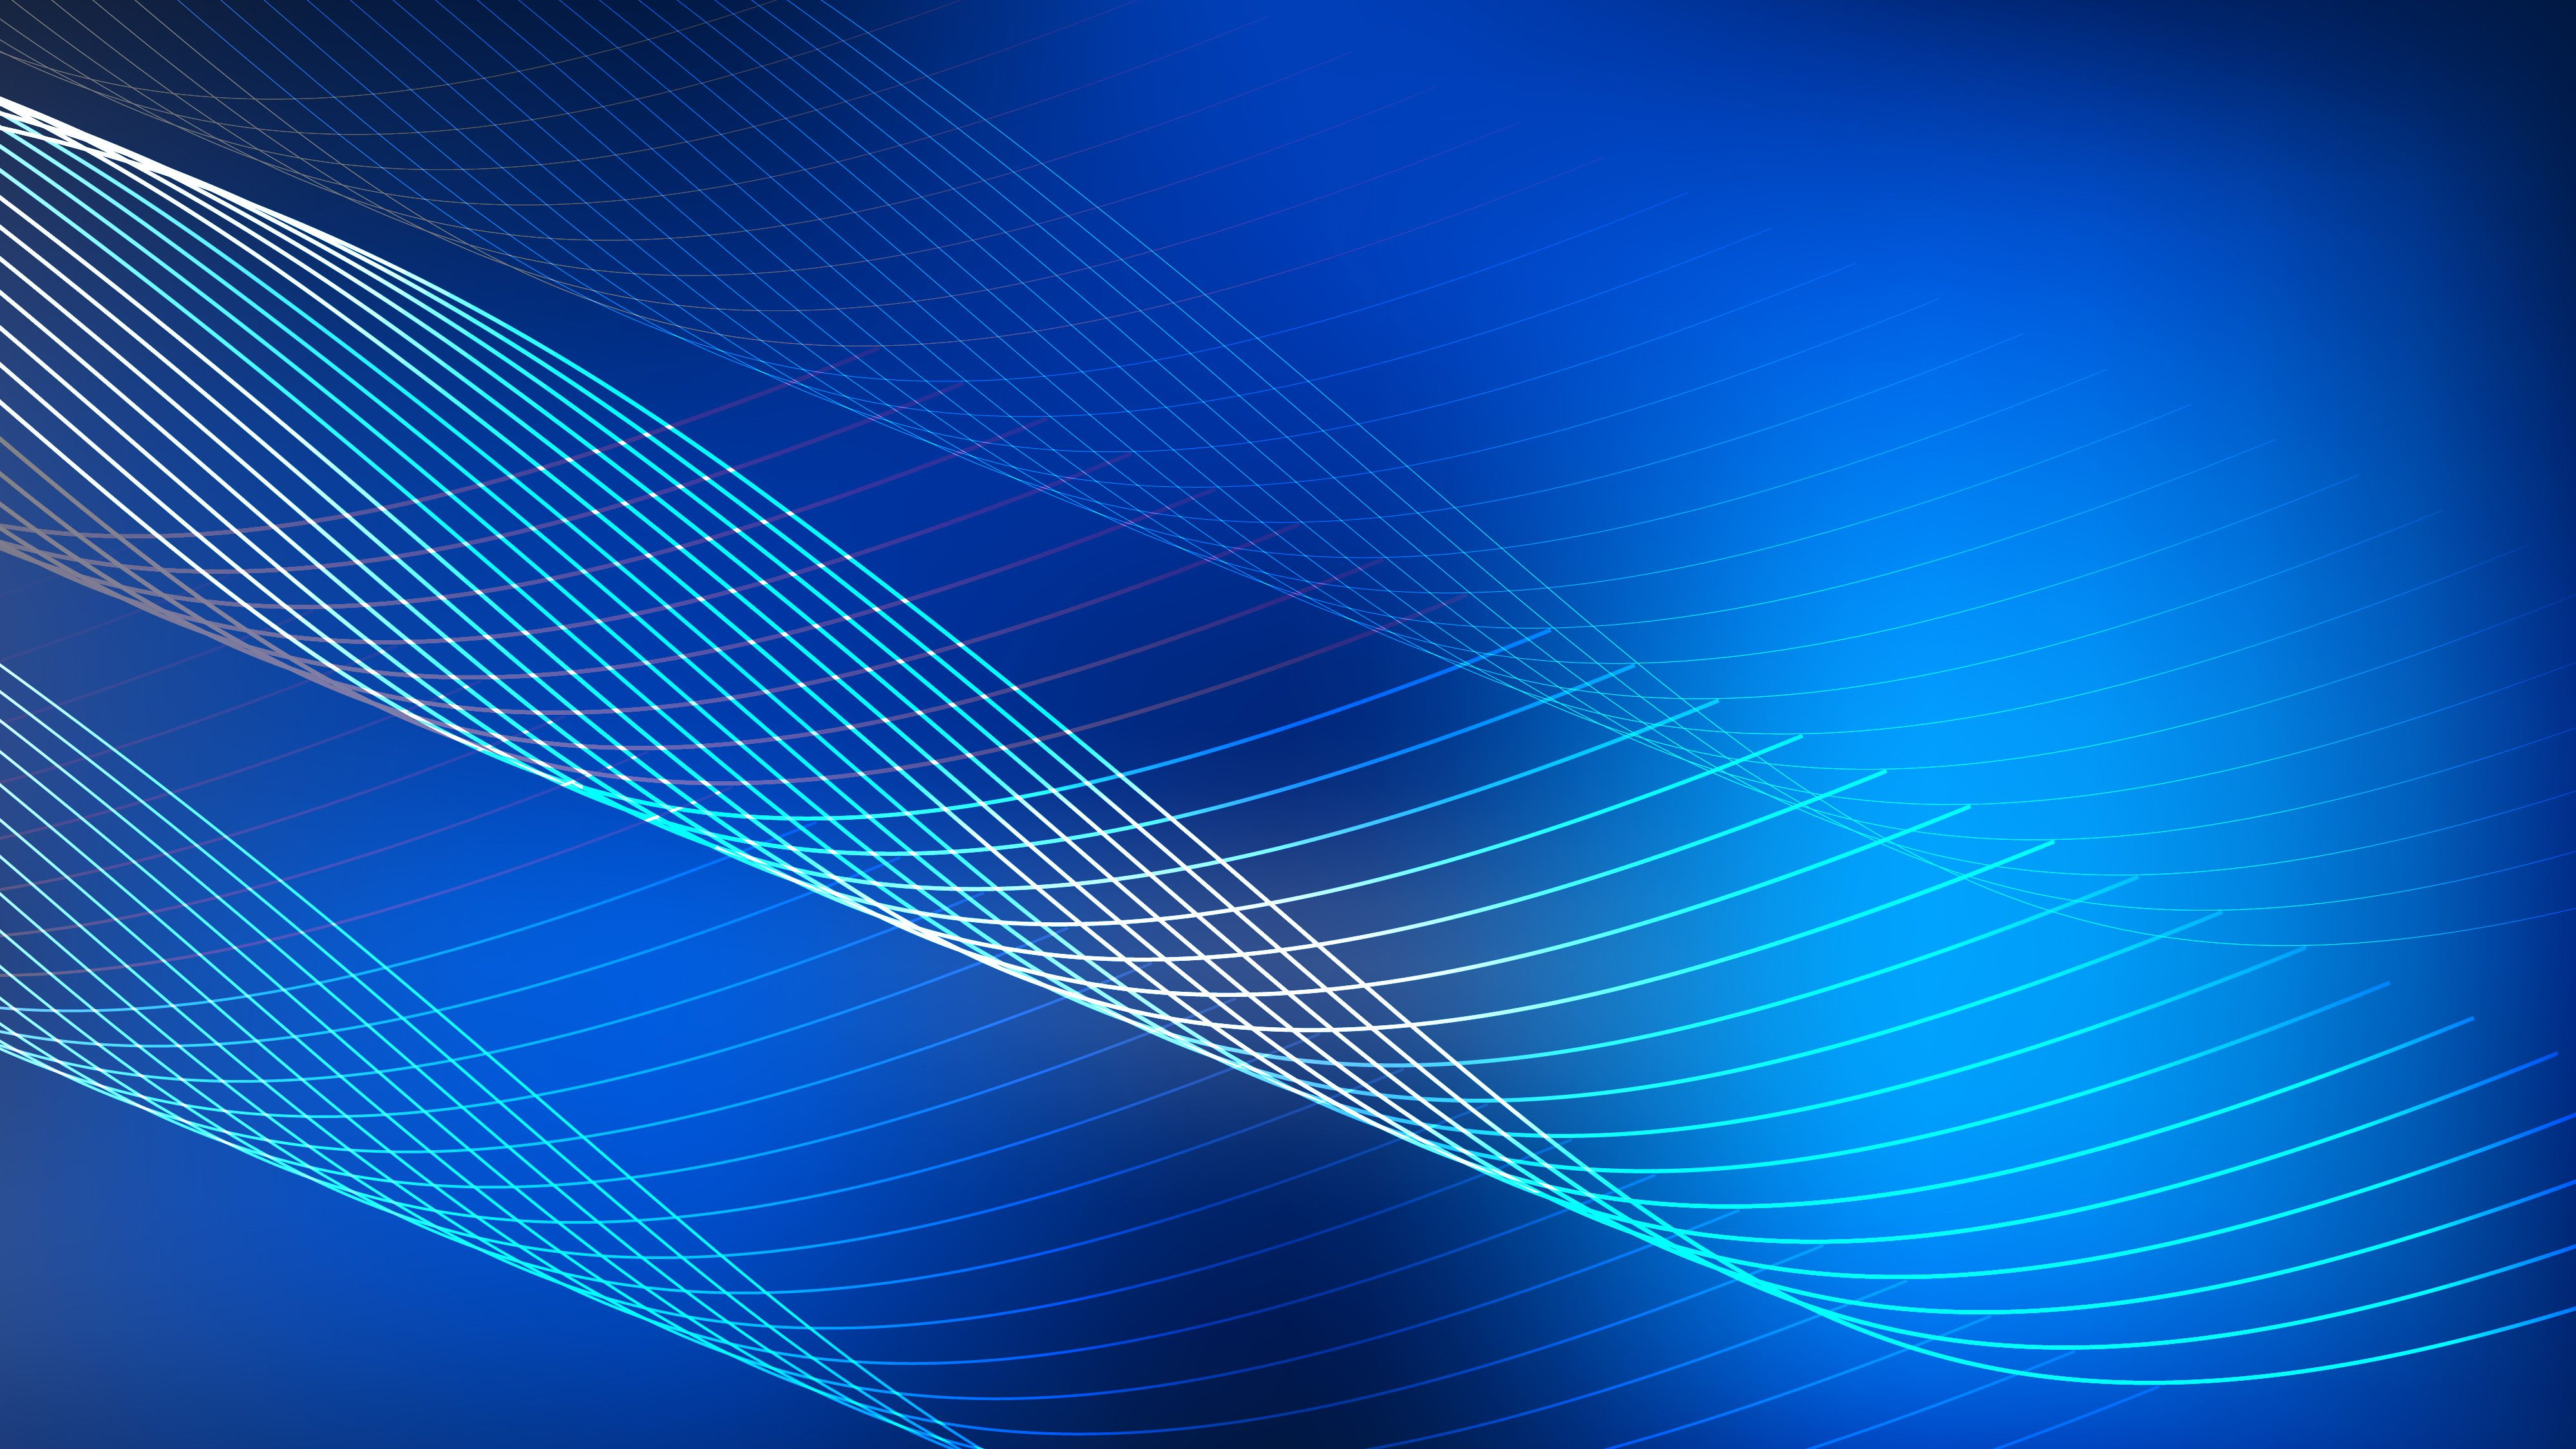 Blue Electric Line   Background Image design 4000x2250